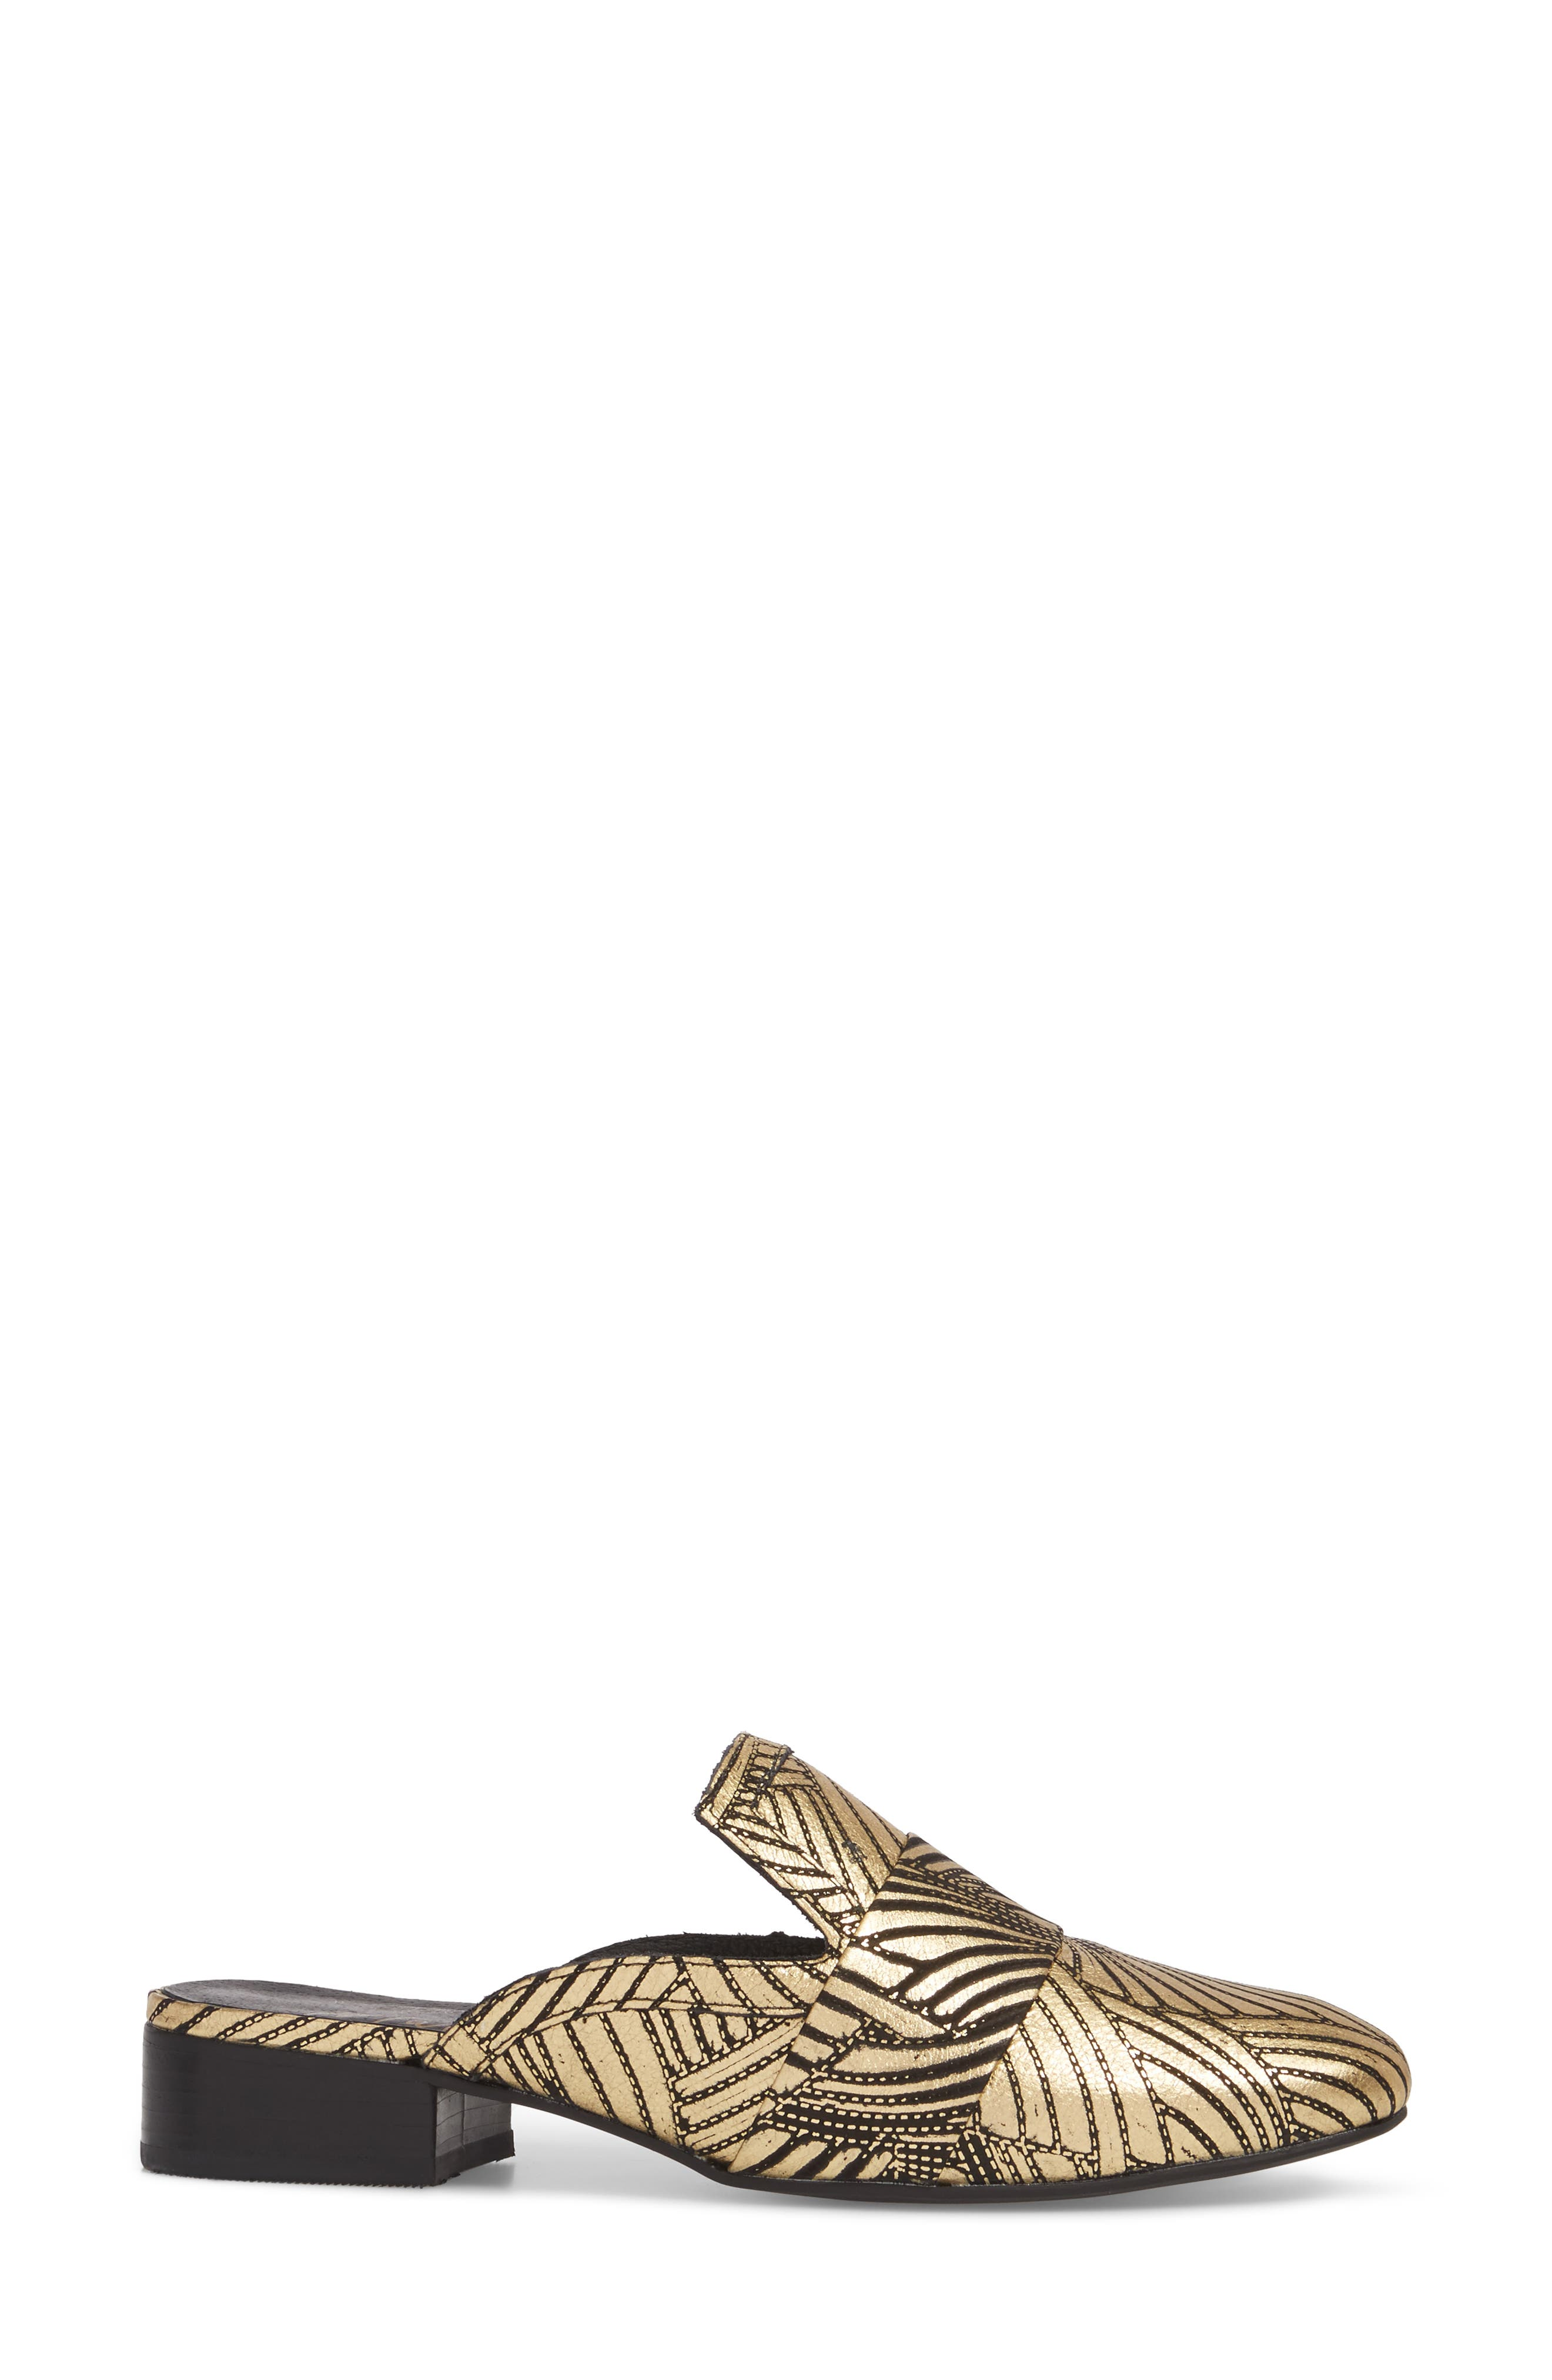 Amuse Society x Matisse Le Bella Loafer Mule,                             Alternate thumbnail 3, color,                             Gold Floral Leather